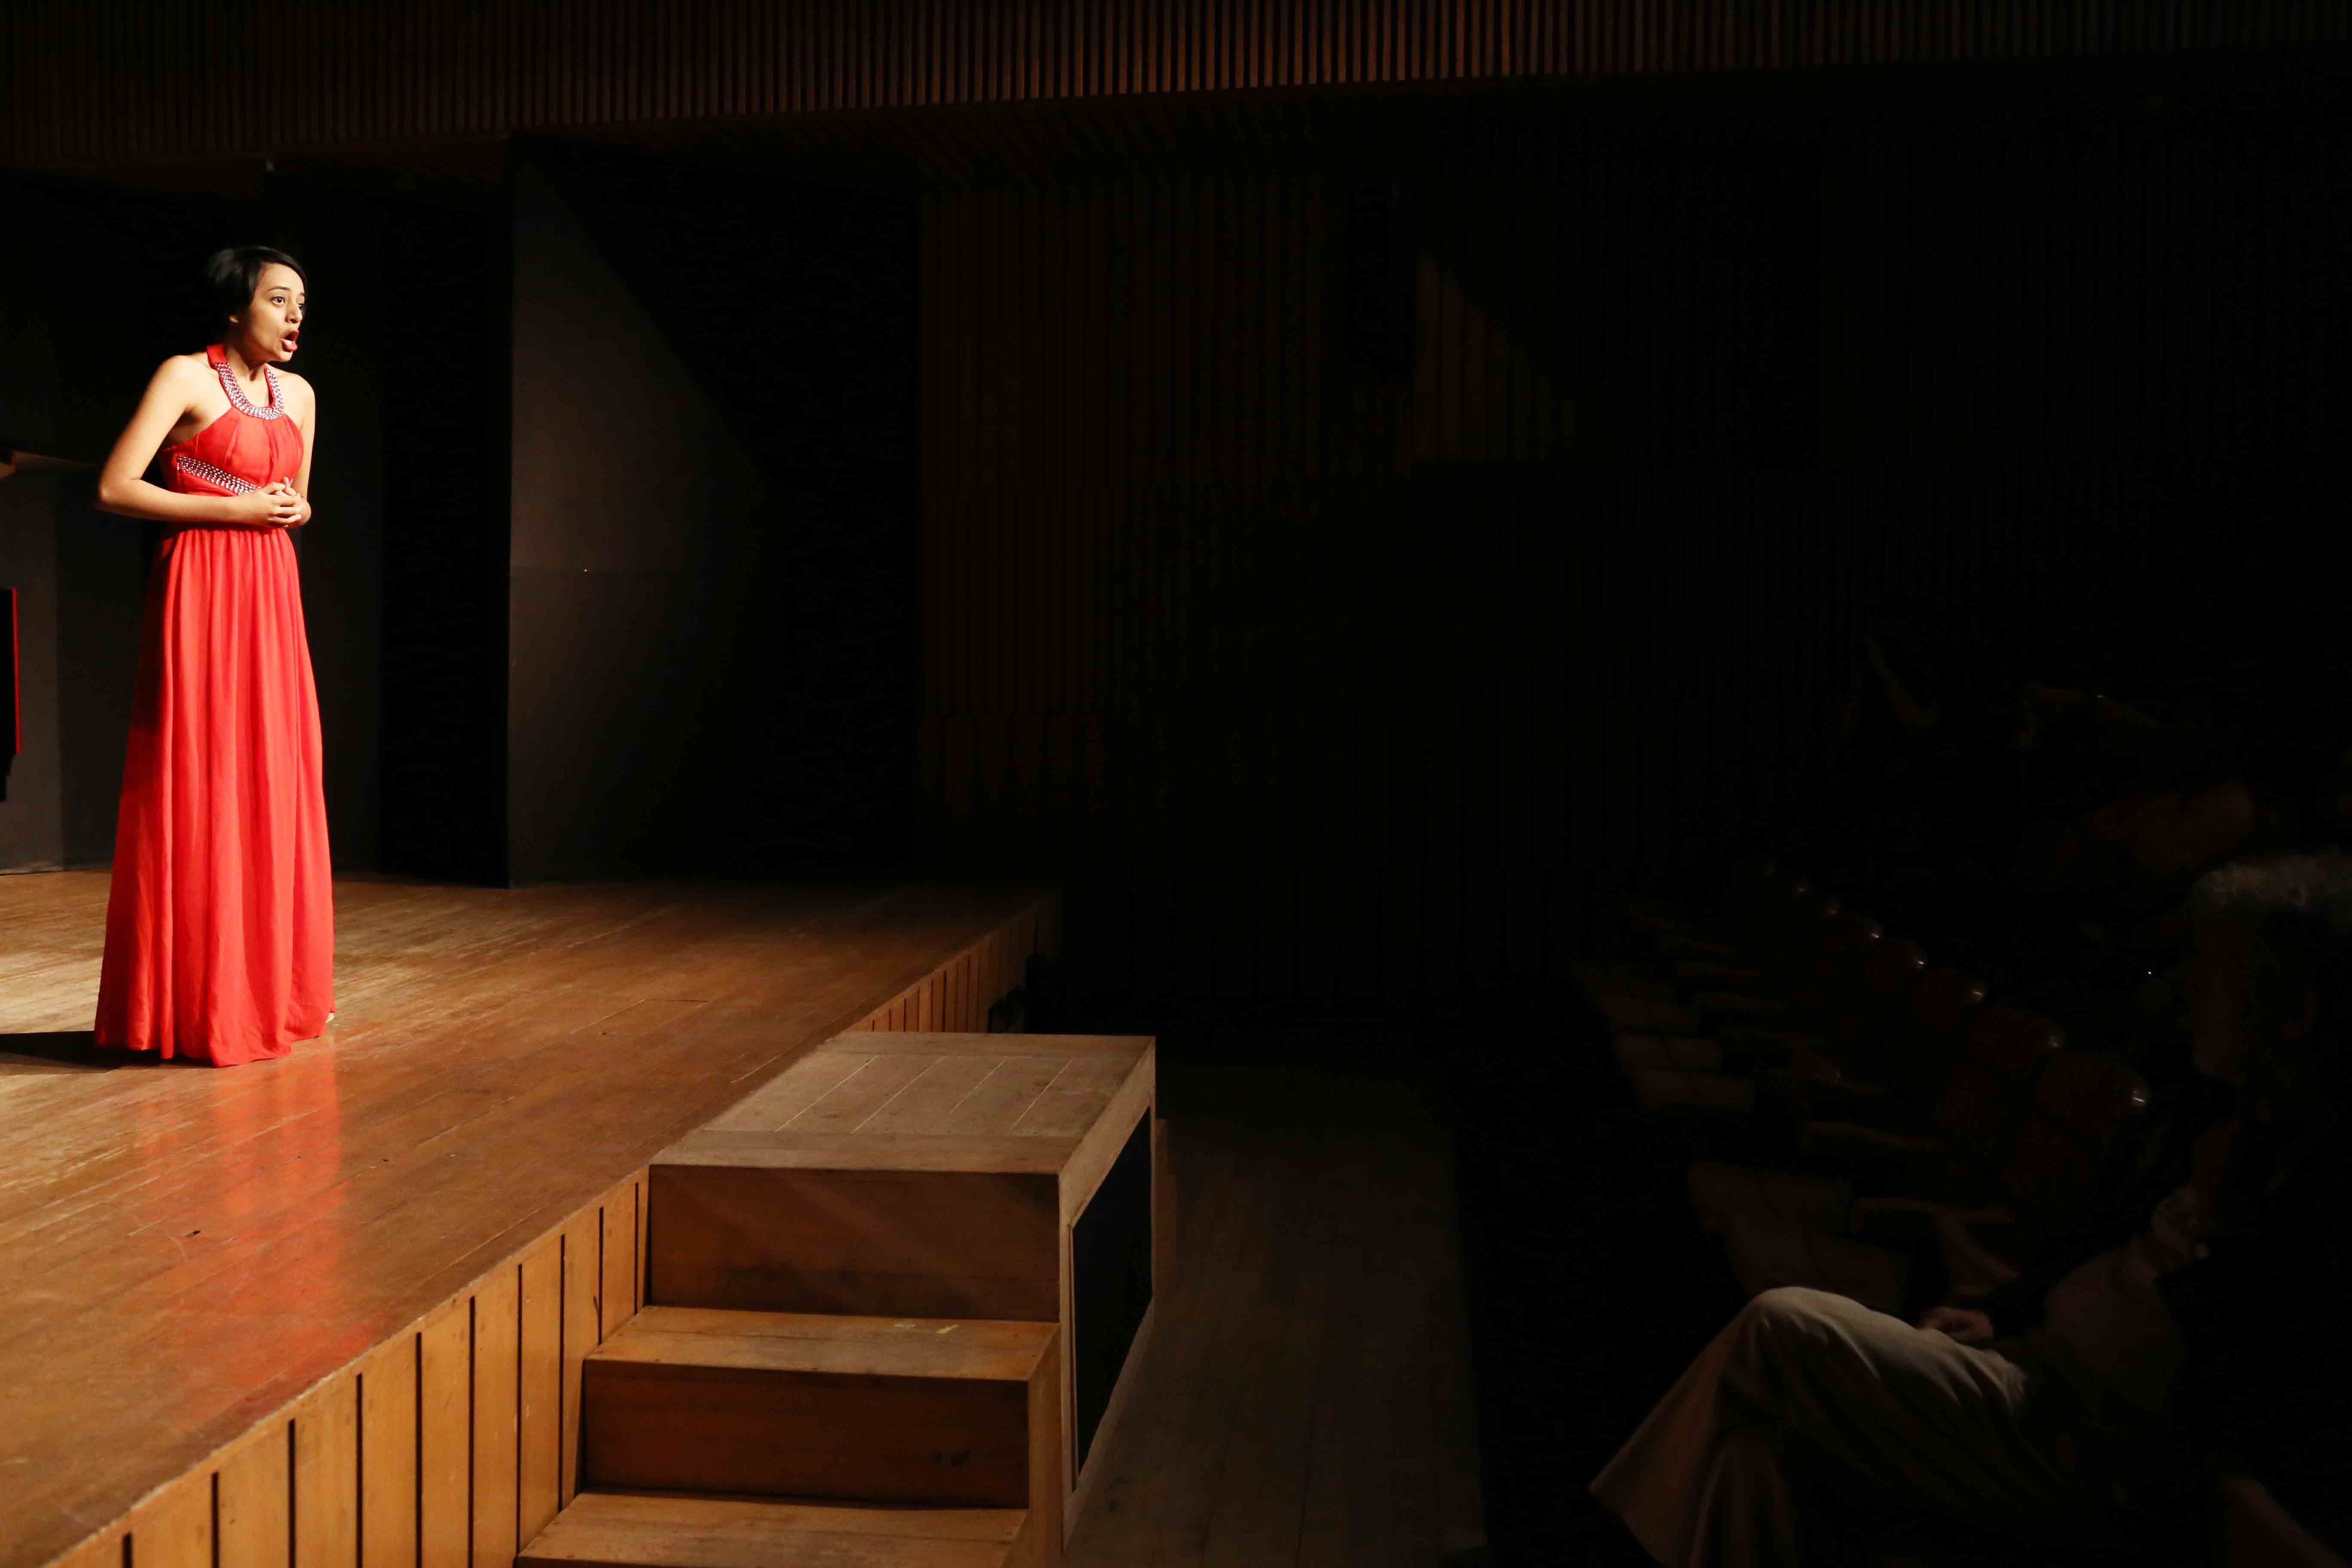 City Moment – The Opera Singer's Front Row Audience, Alliance Francaise de Delhi